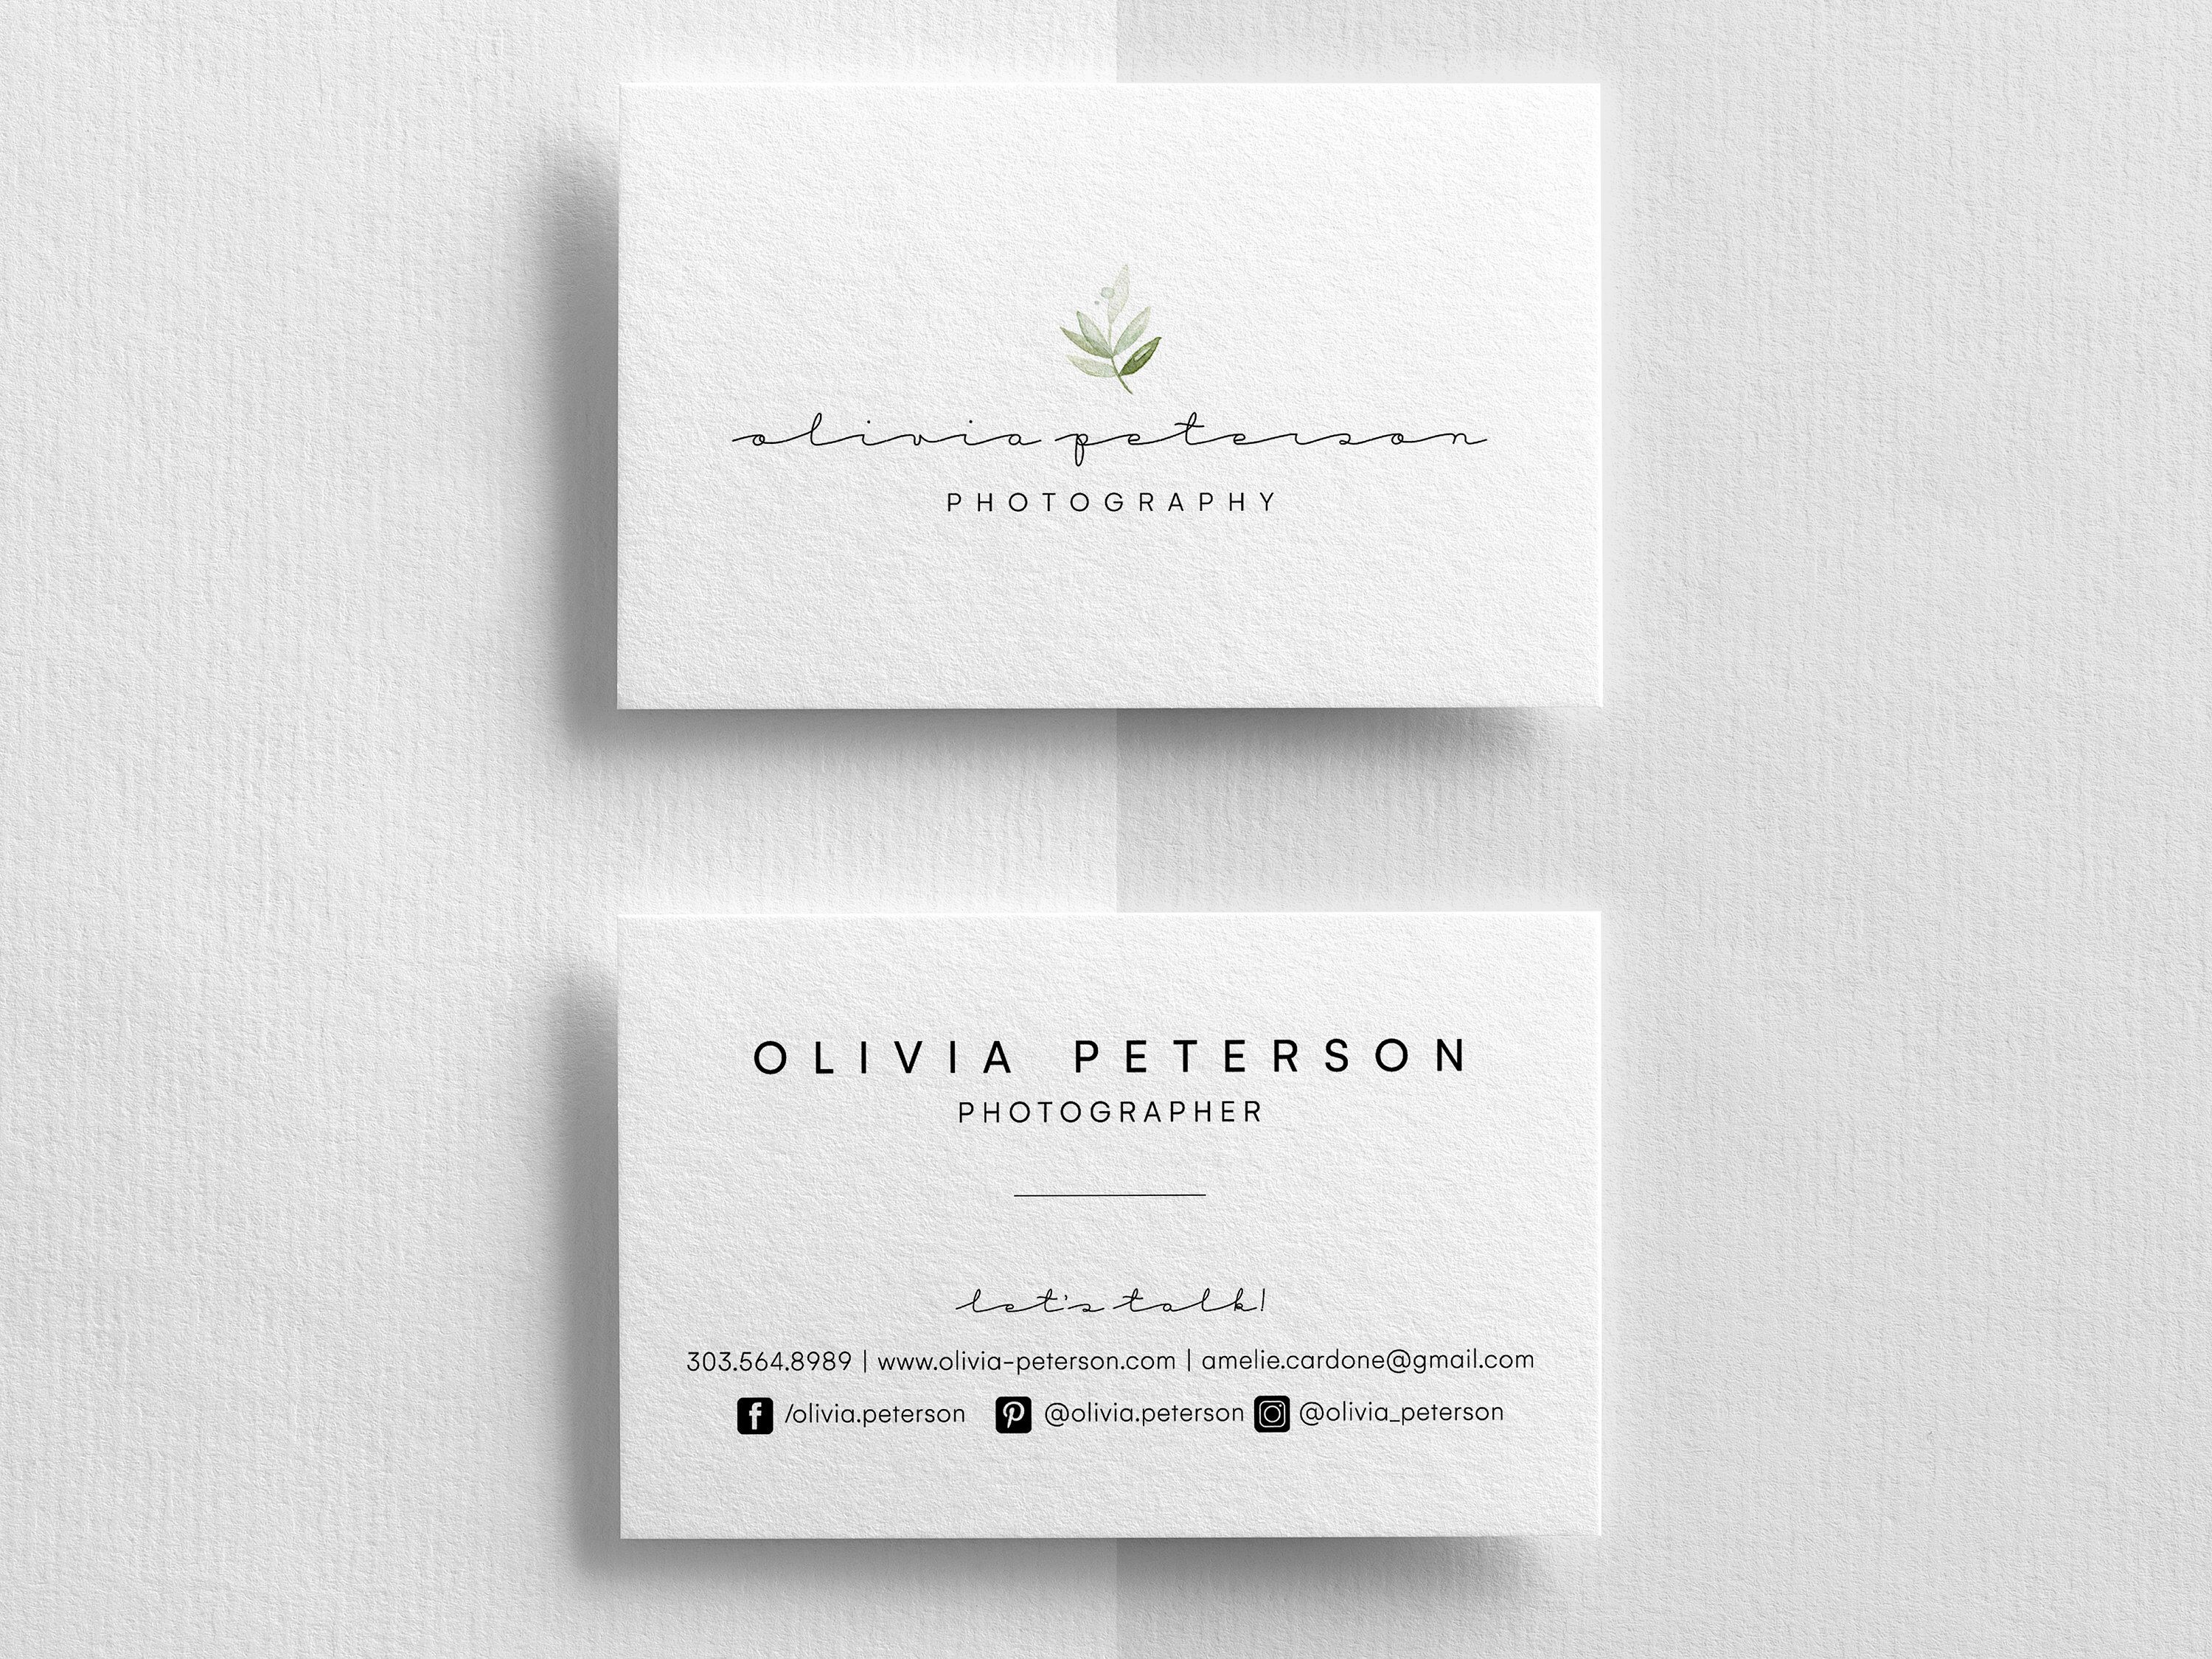 Business Cards Business Card Templates Editable Business Etsy Photography Business Cards Template Business Cards Watercolor Business Card Design